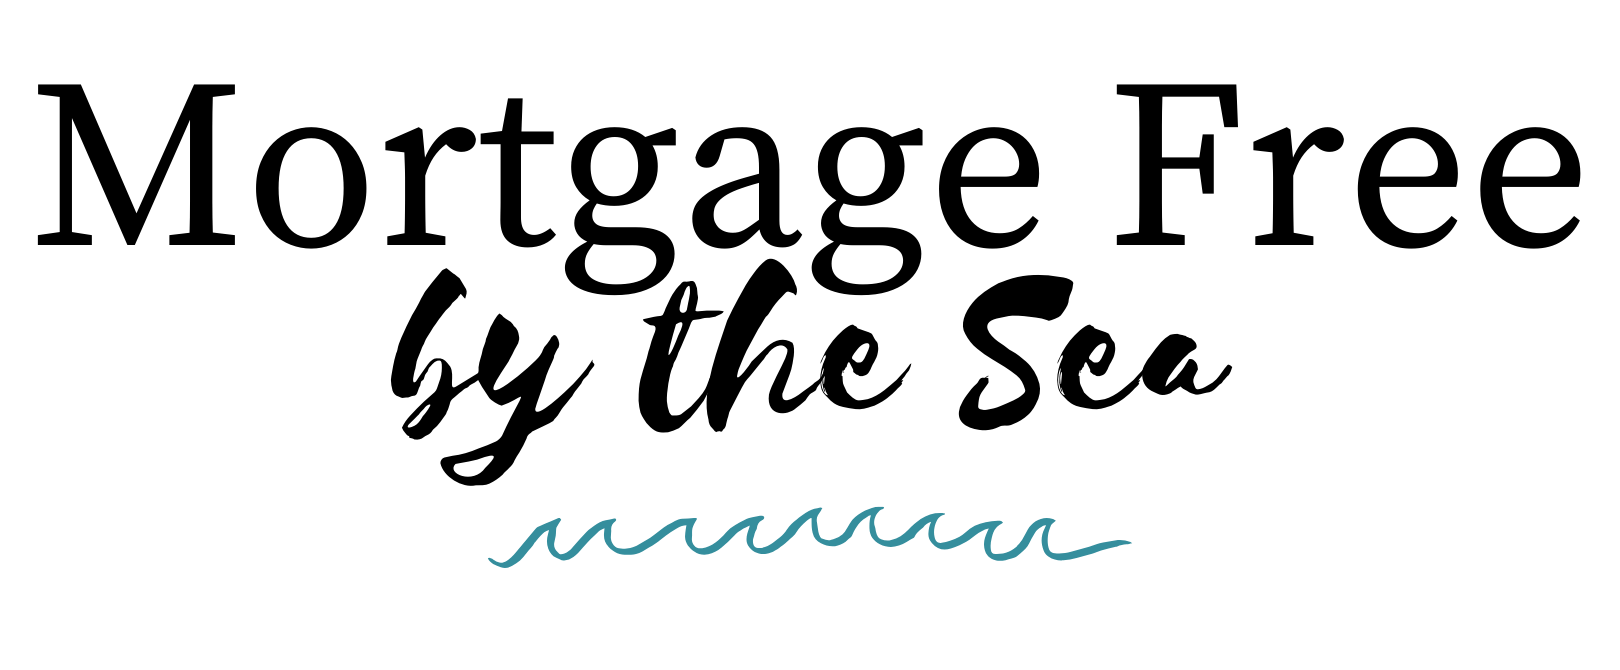 Mortgage Free By The Sea